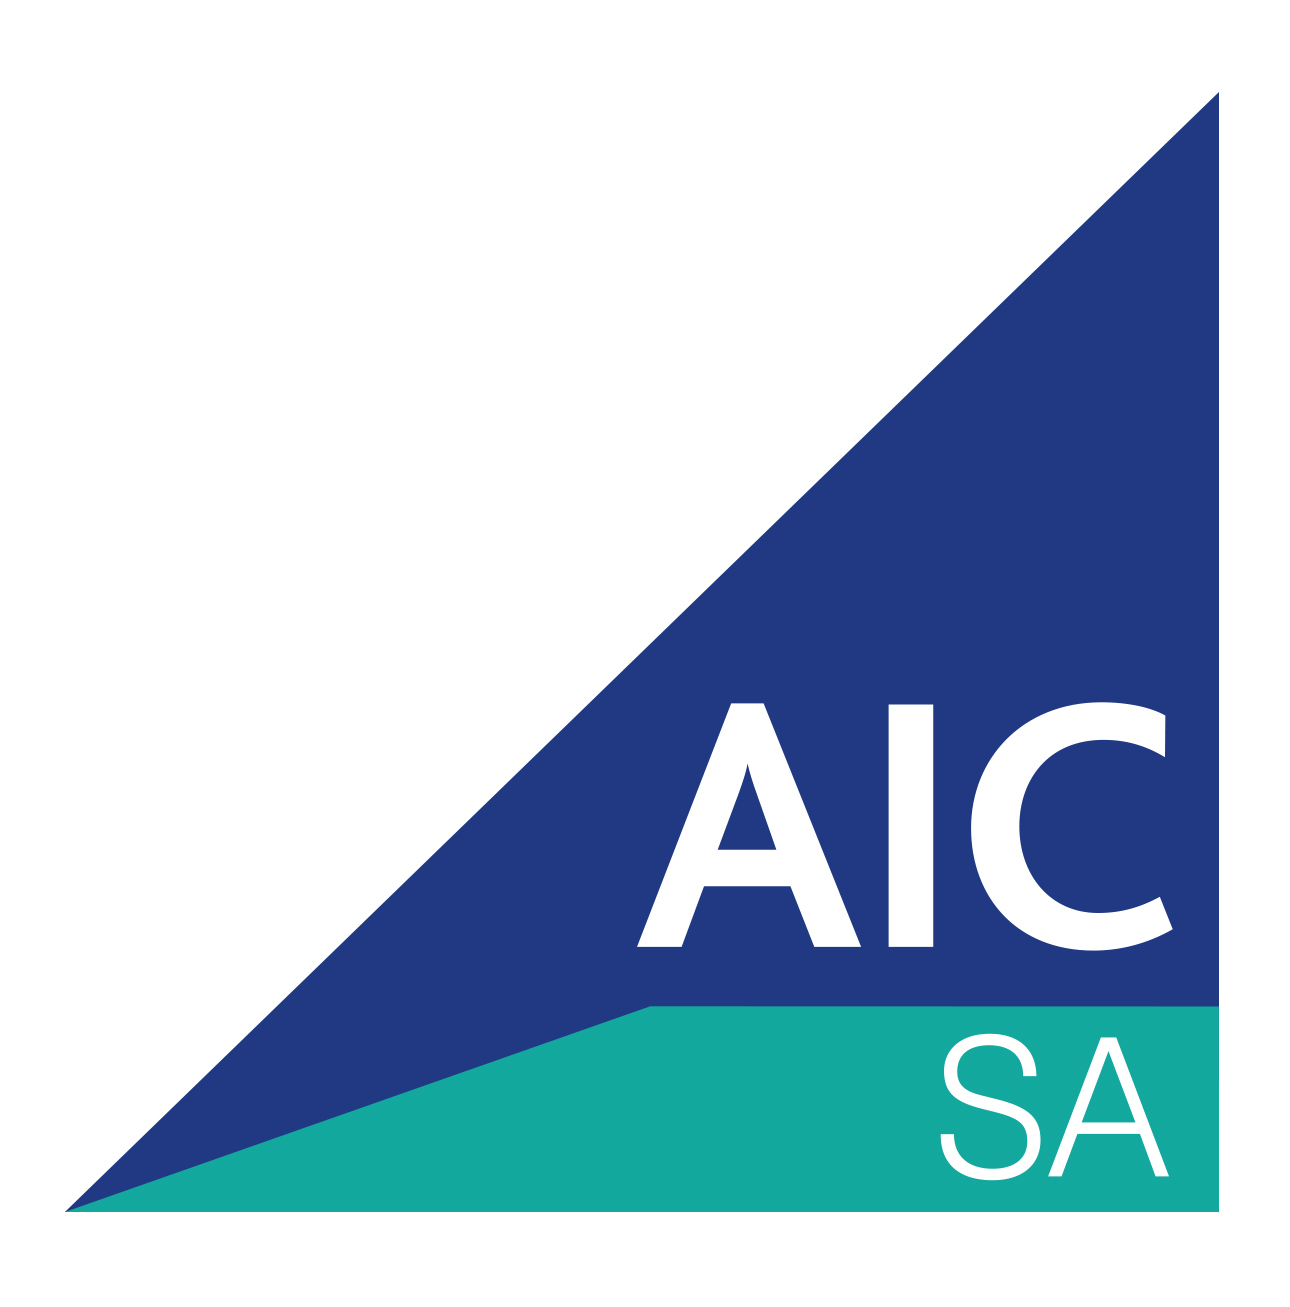 AICSA Online Training